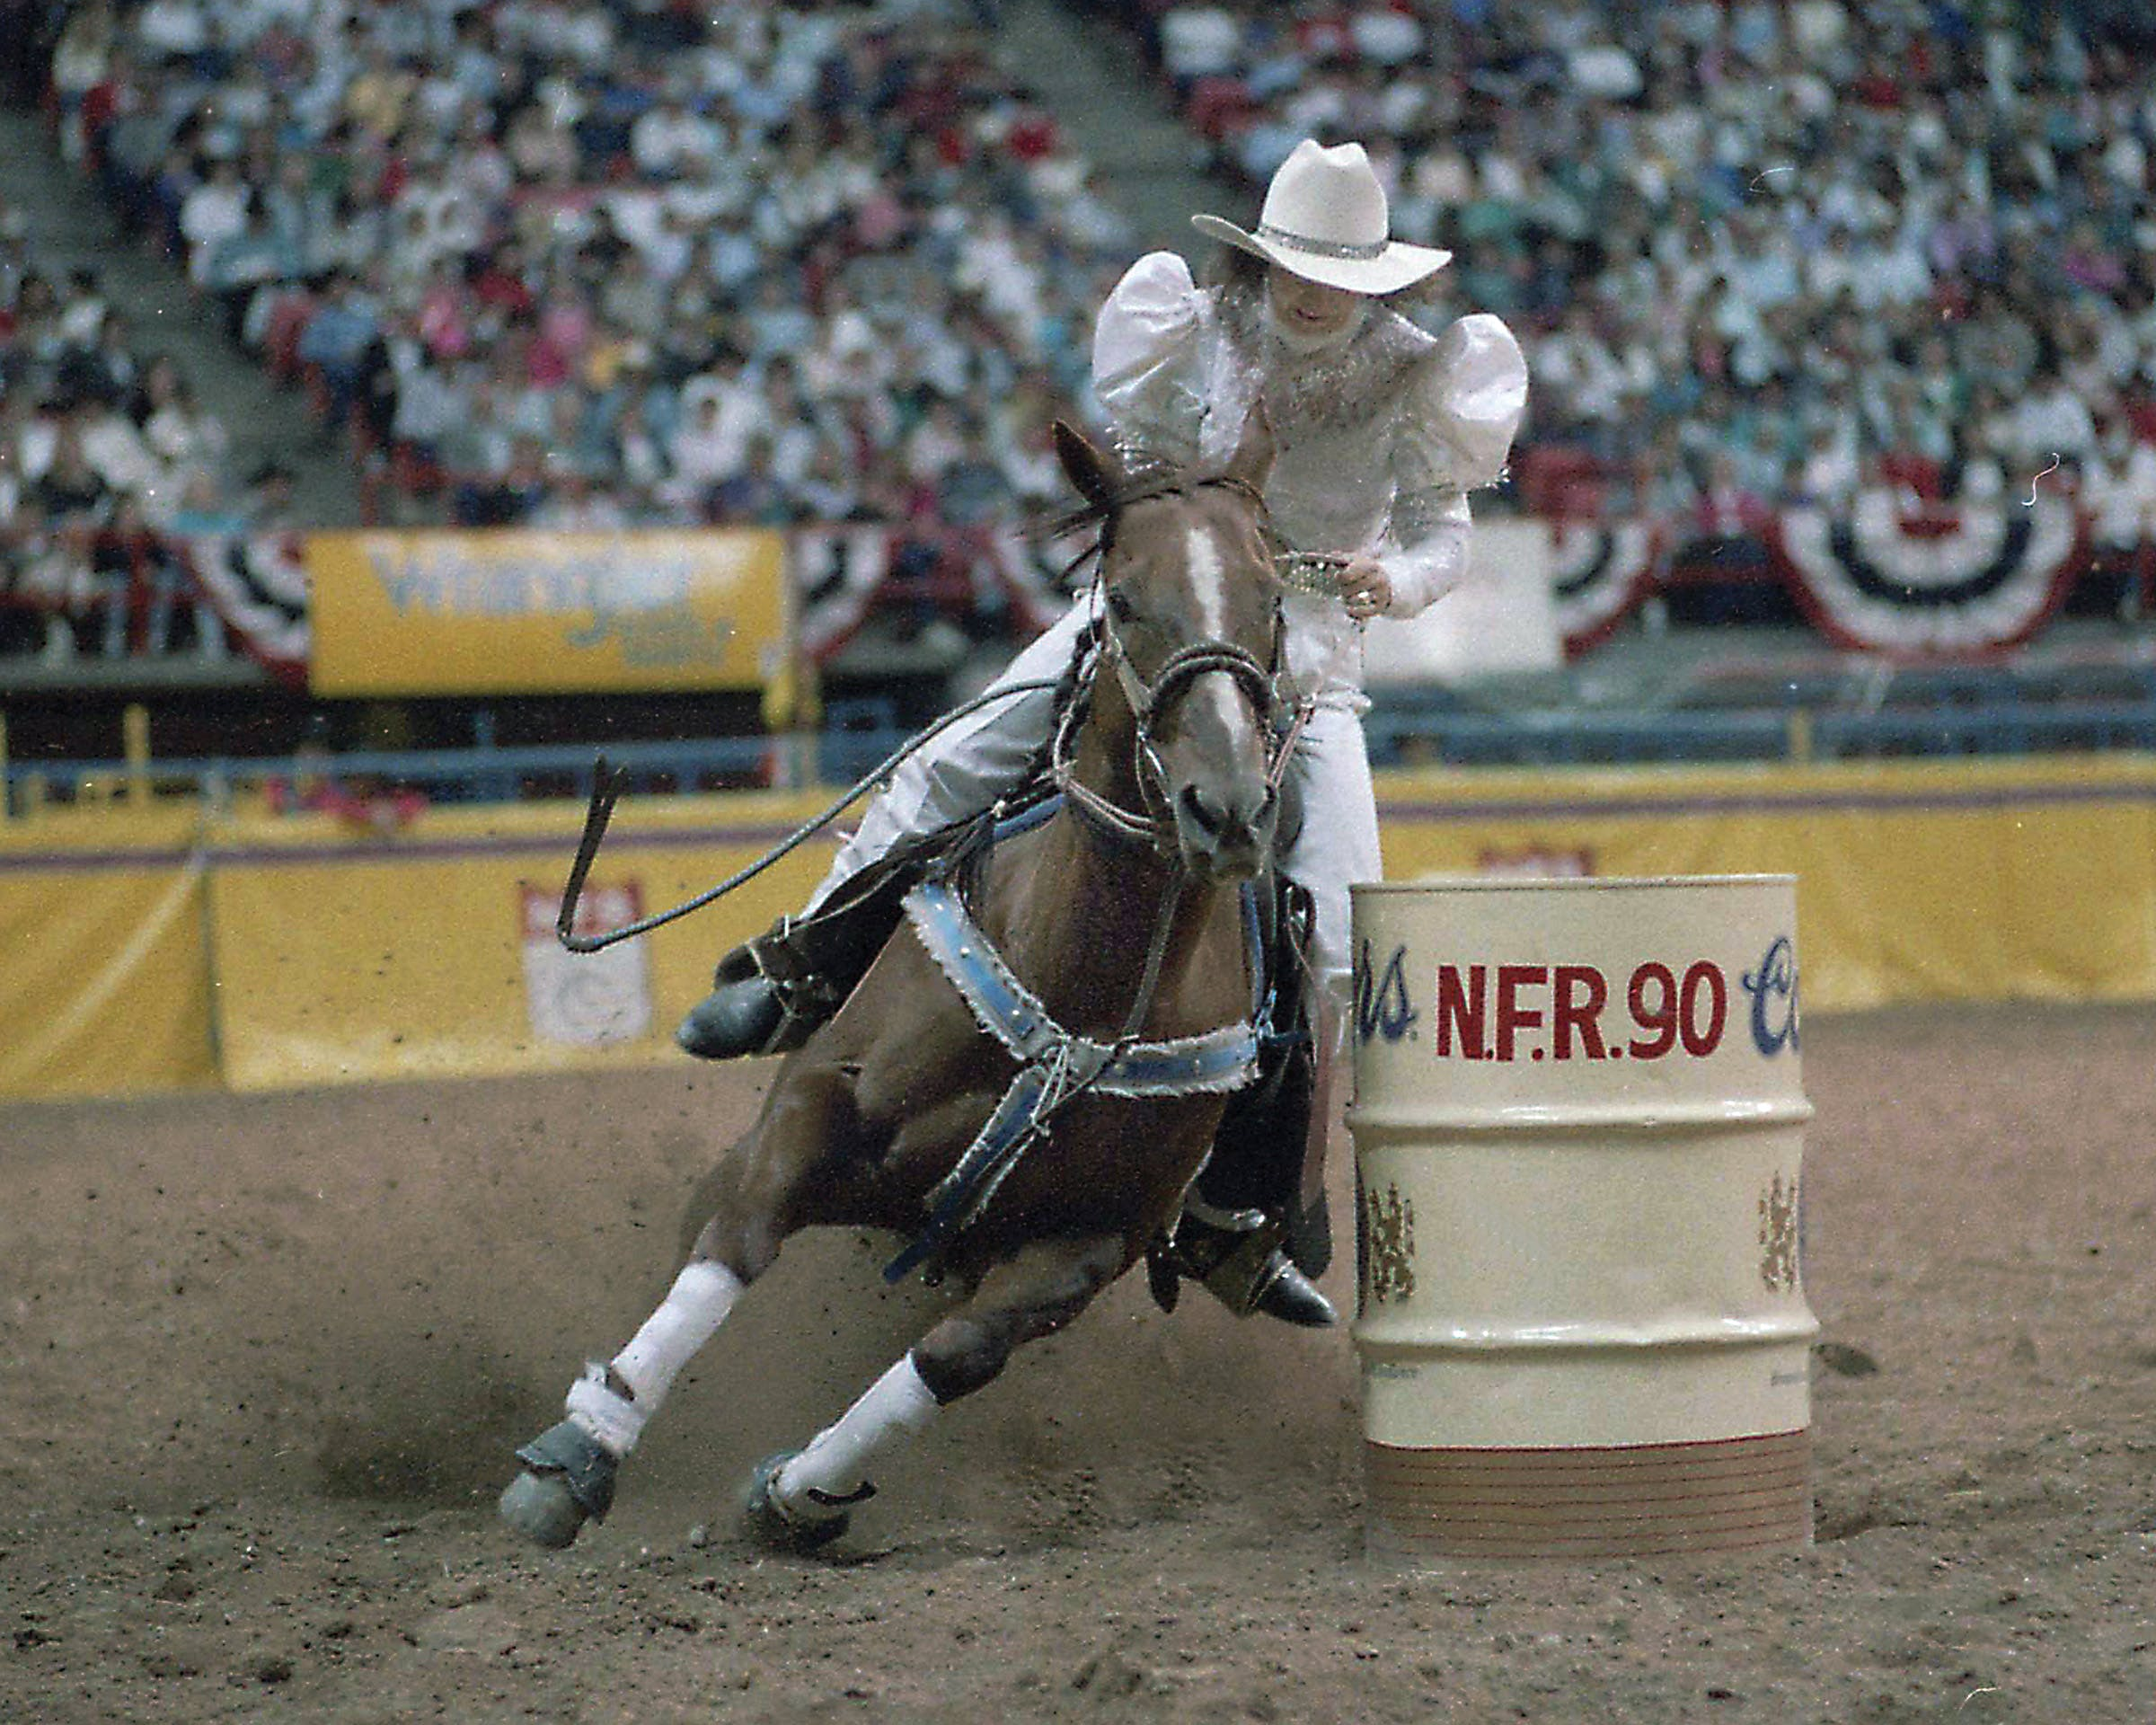 Martha competing in the outfit she had fashioned out of a wedding dress, at the 1990 National Finals Rodeo.